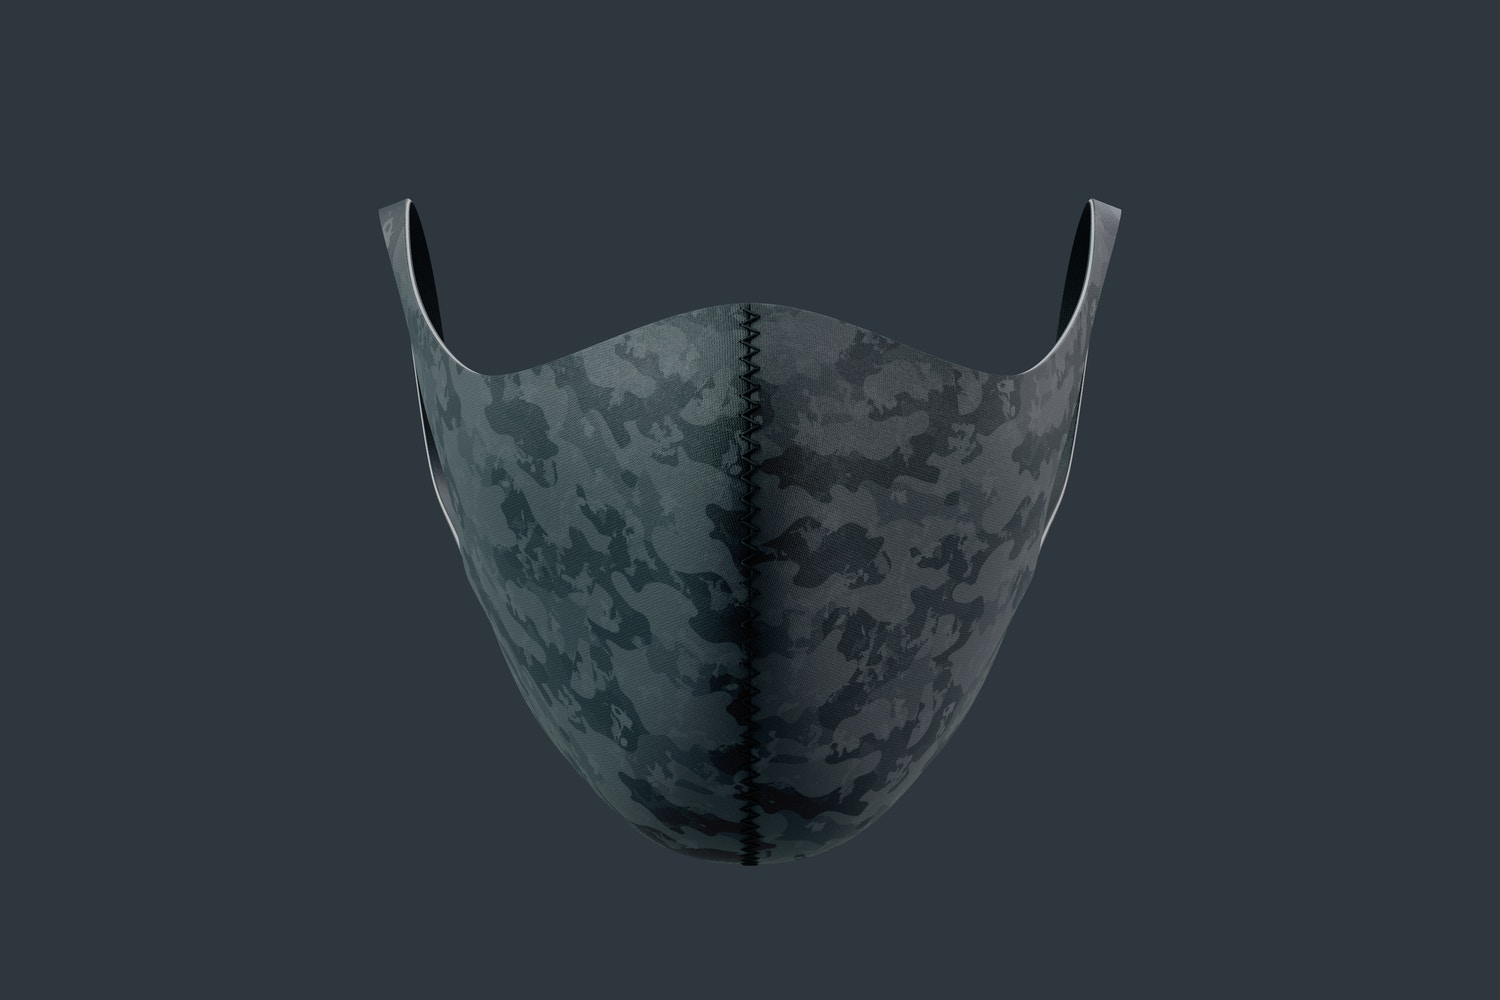 Neoprene Guard Face Mask Mockup, Front View 02